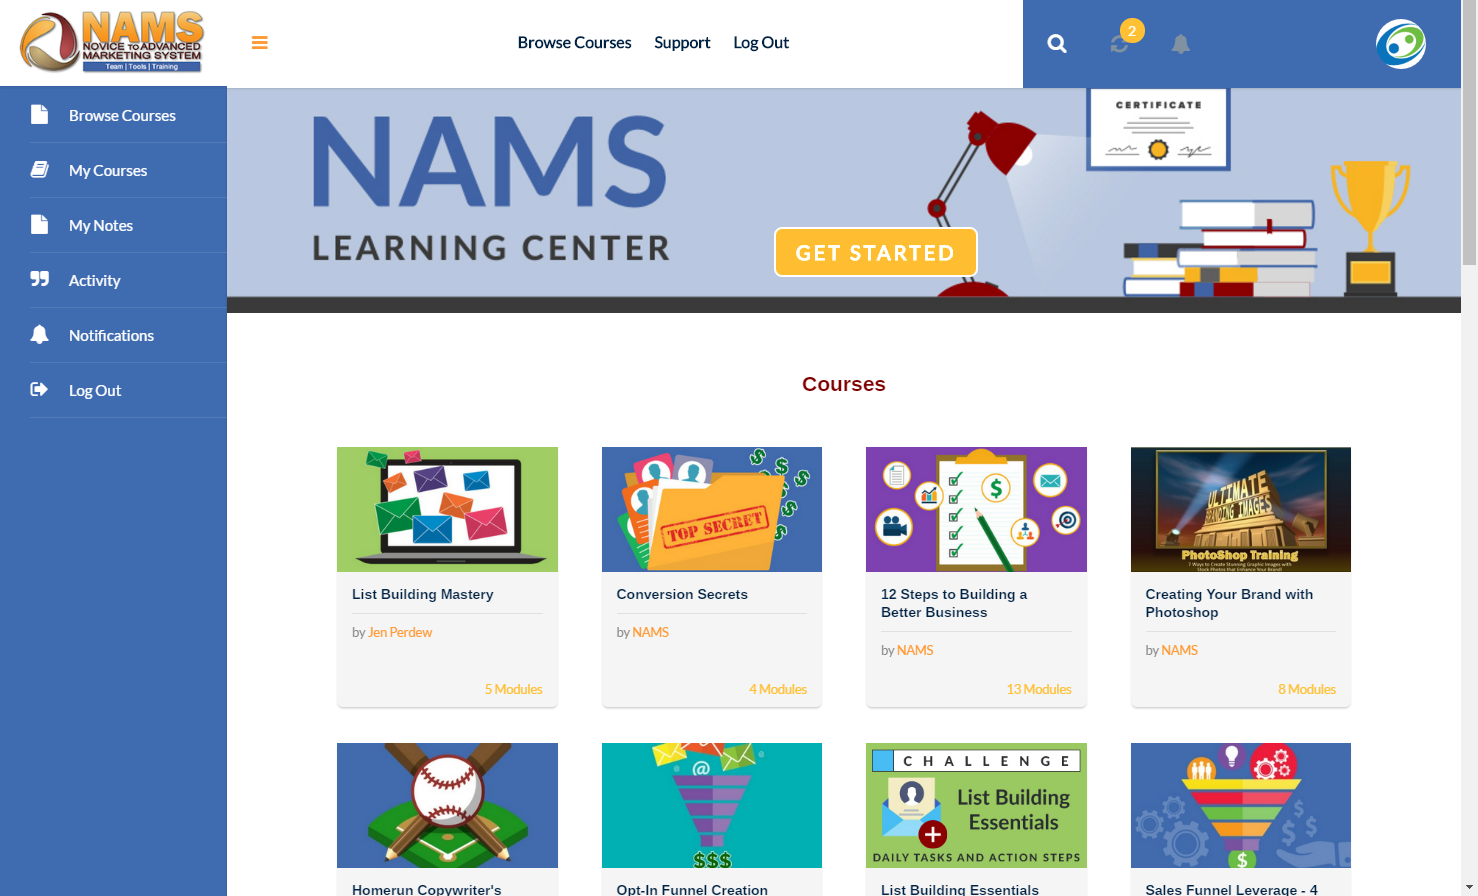 NAMS Learning Center